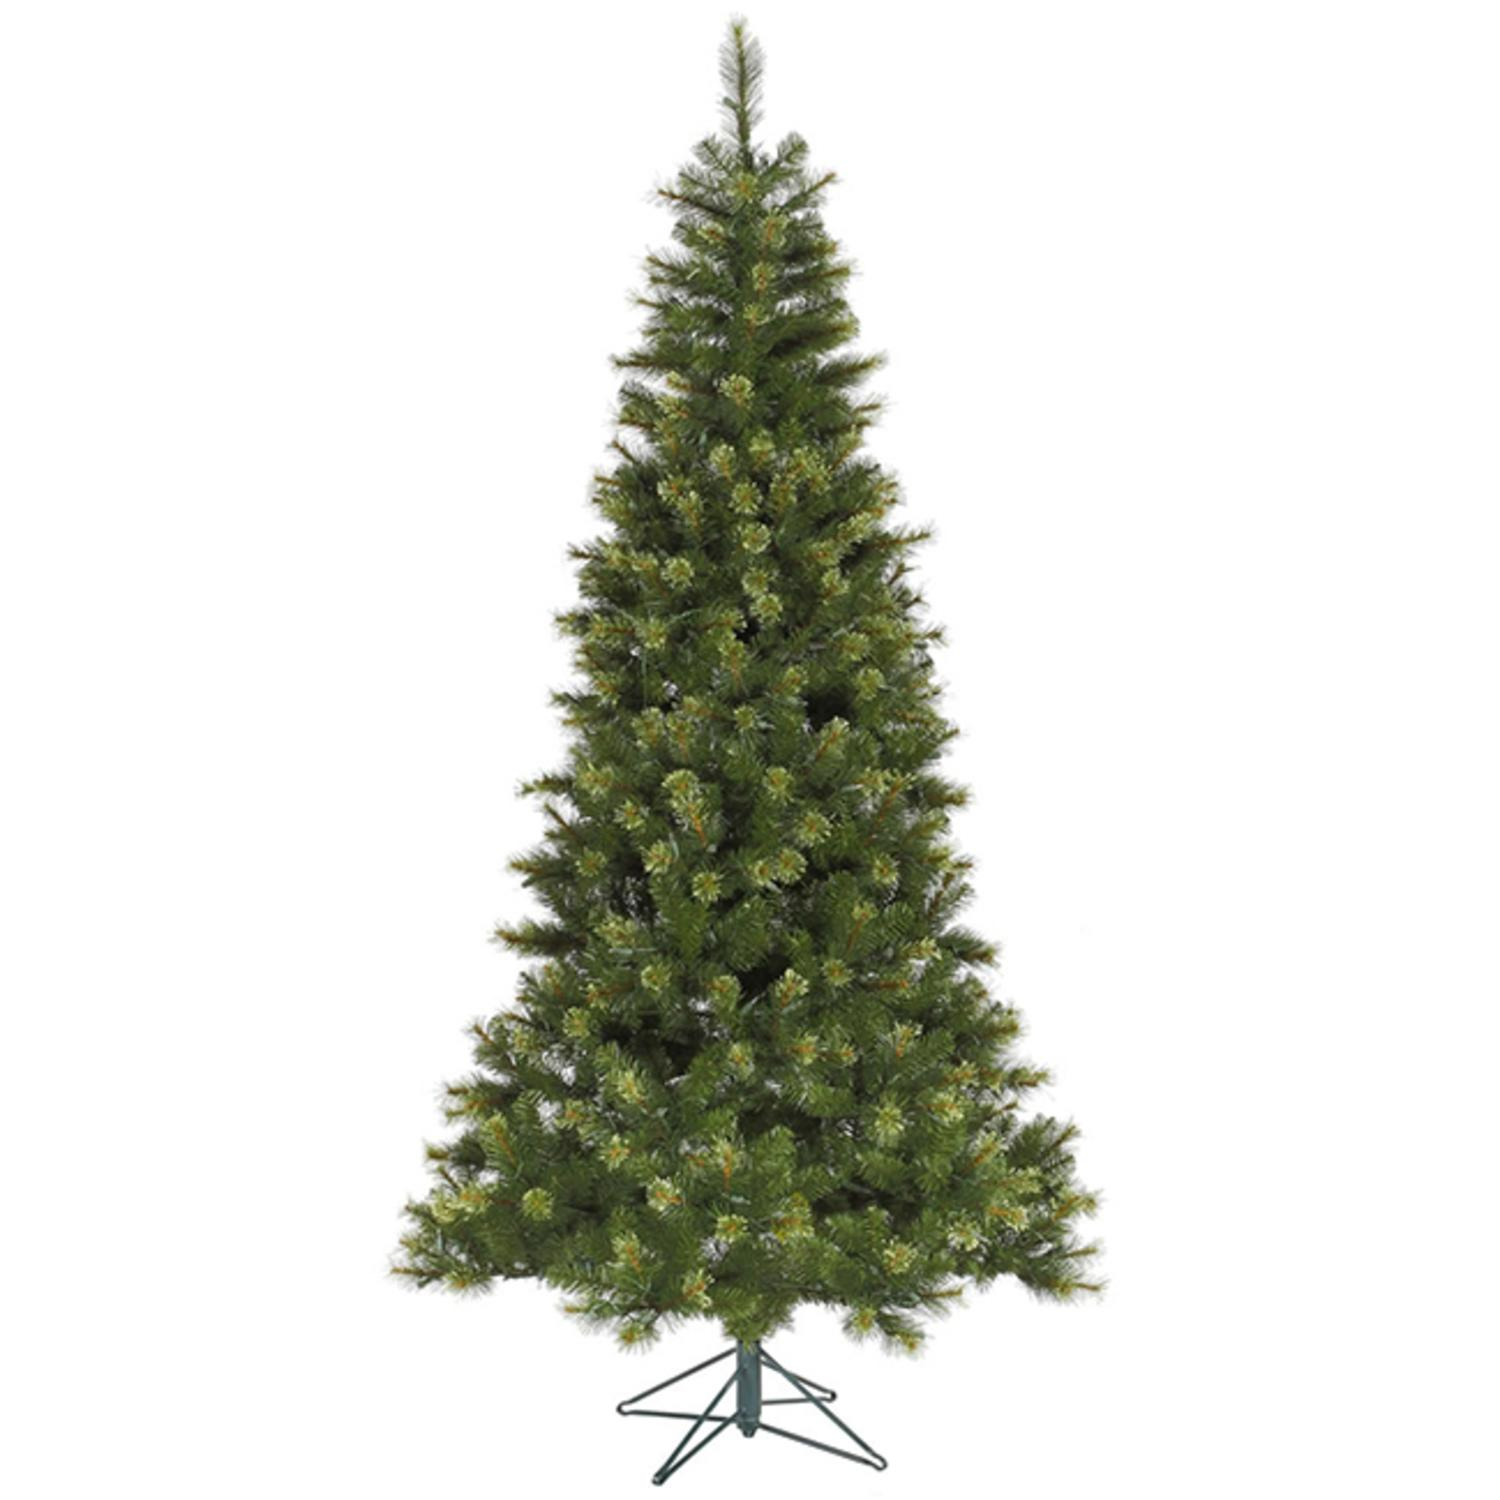 10' Jack Pine Artificial Christmas Tree - Unlit